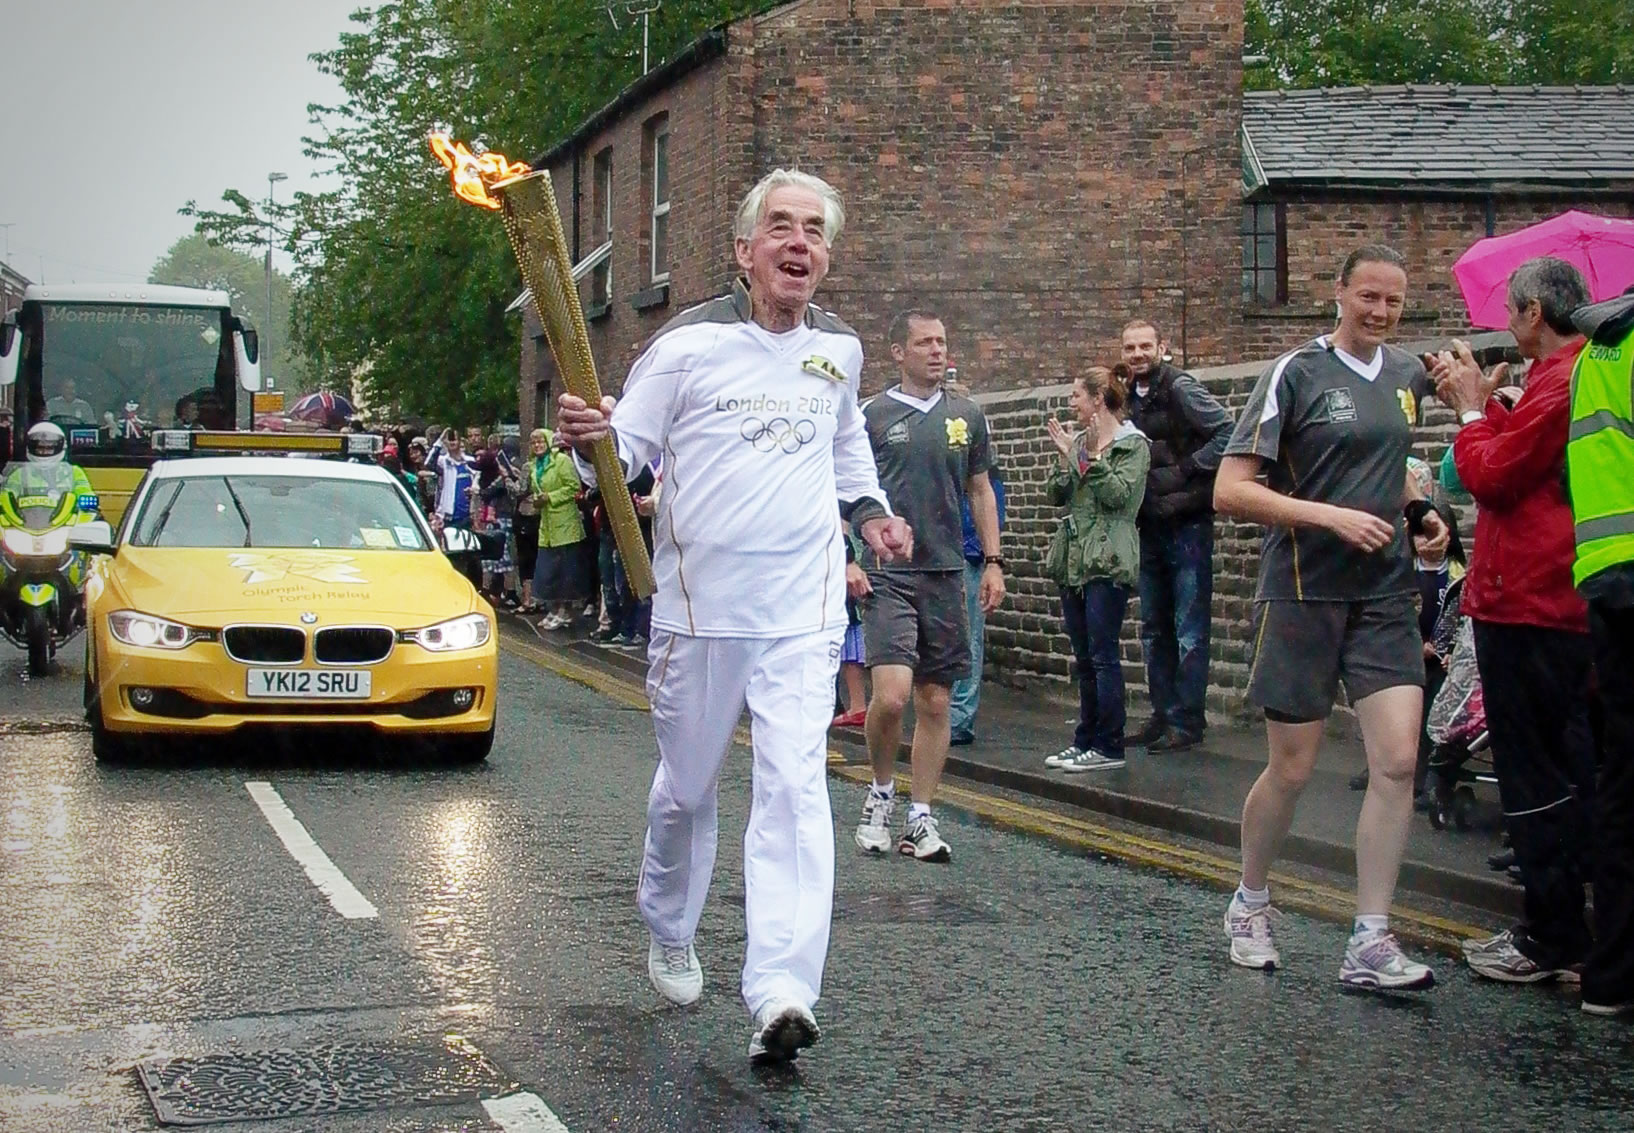 In 2012 Joe Beswick Olympic torch Macclesfield